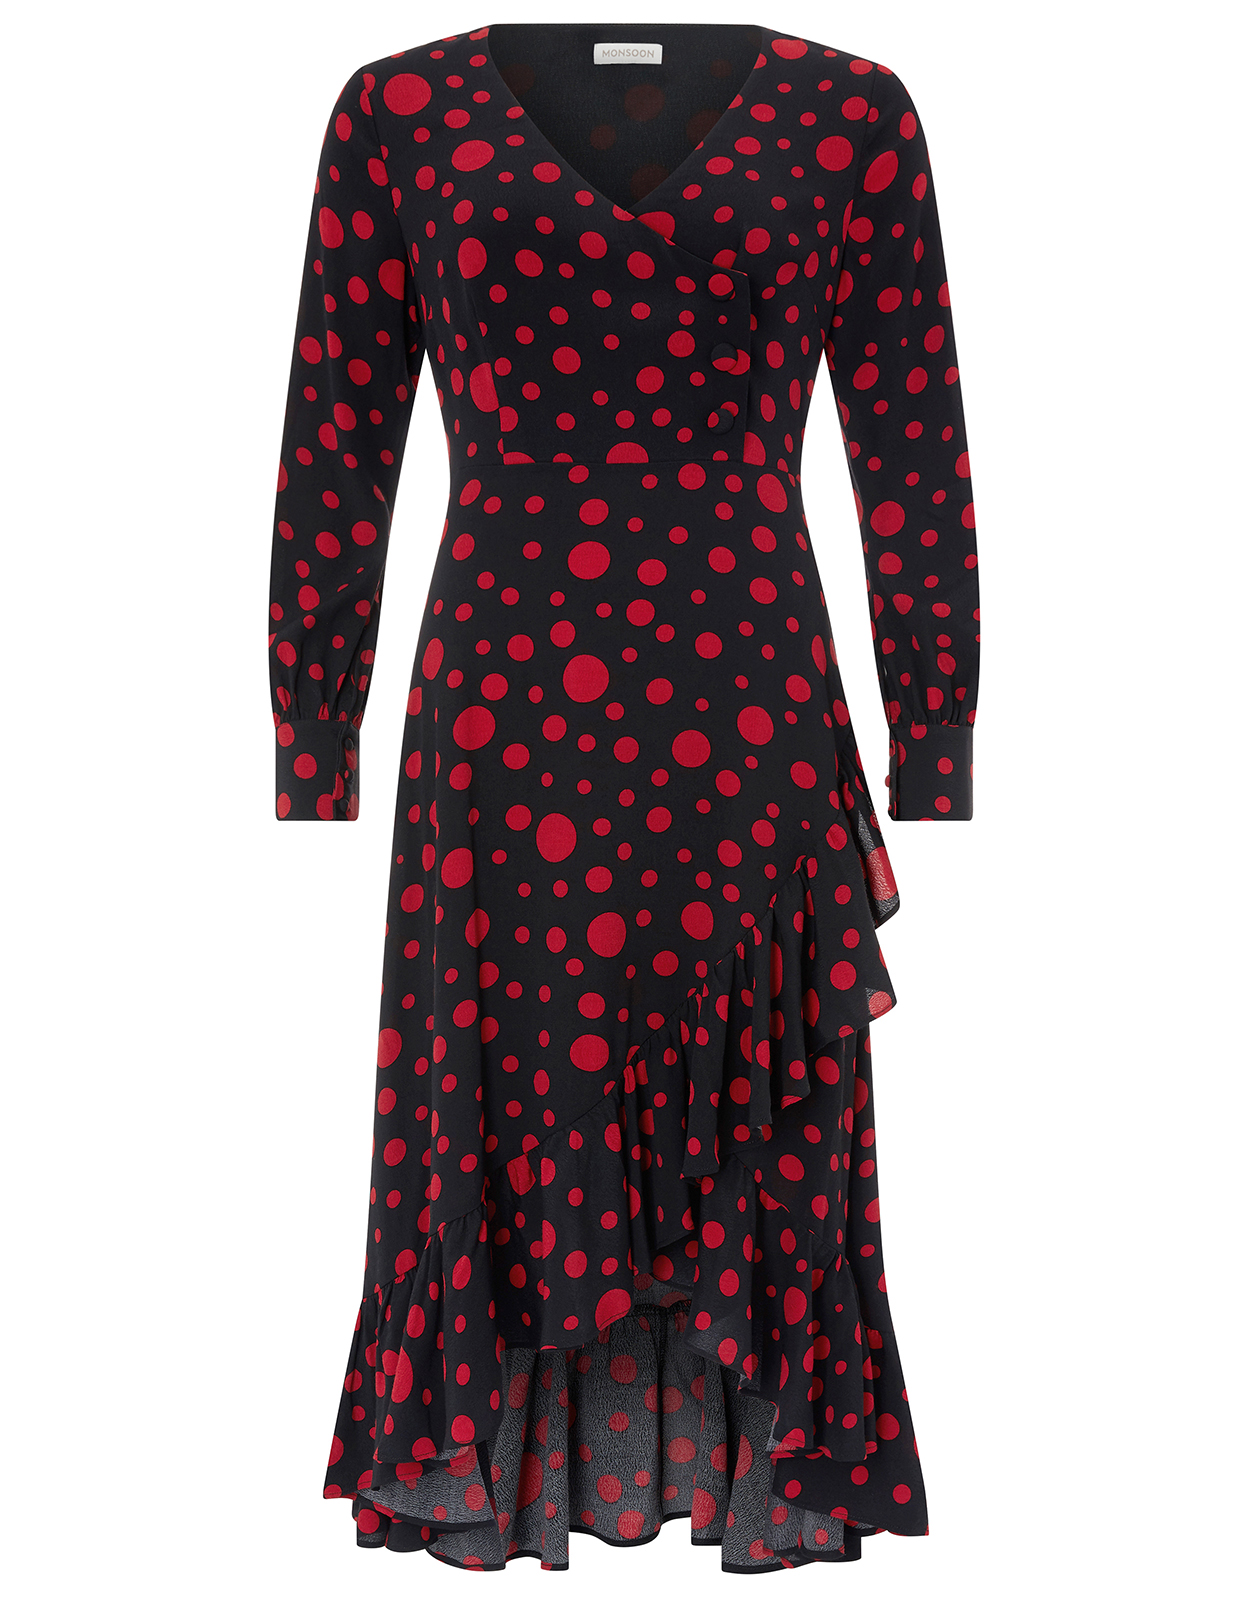 Monsoon Scarlett Spot Print Midi Dress